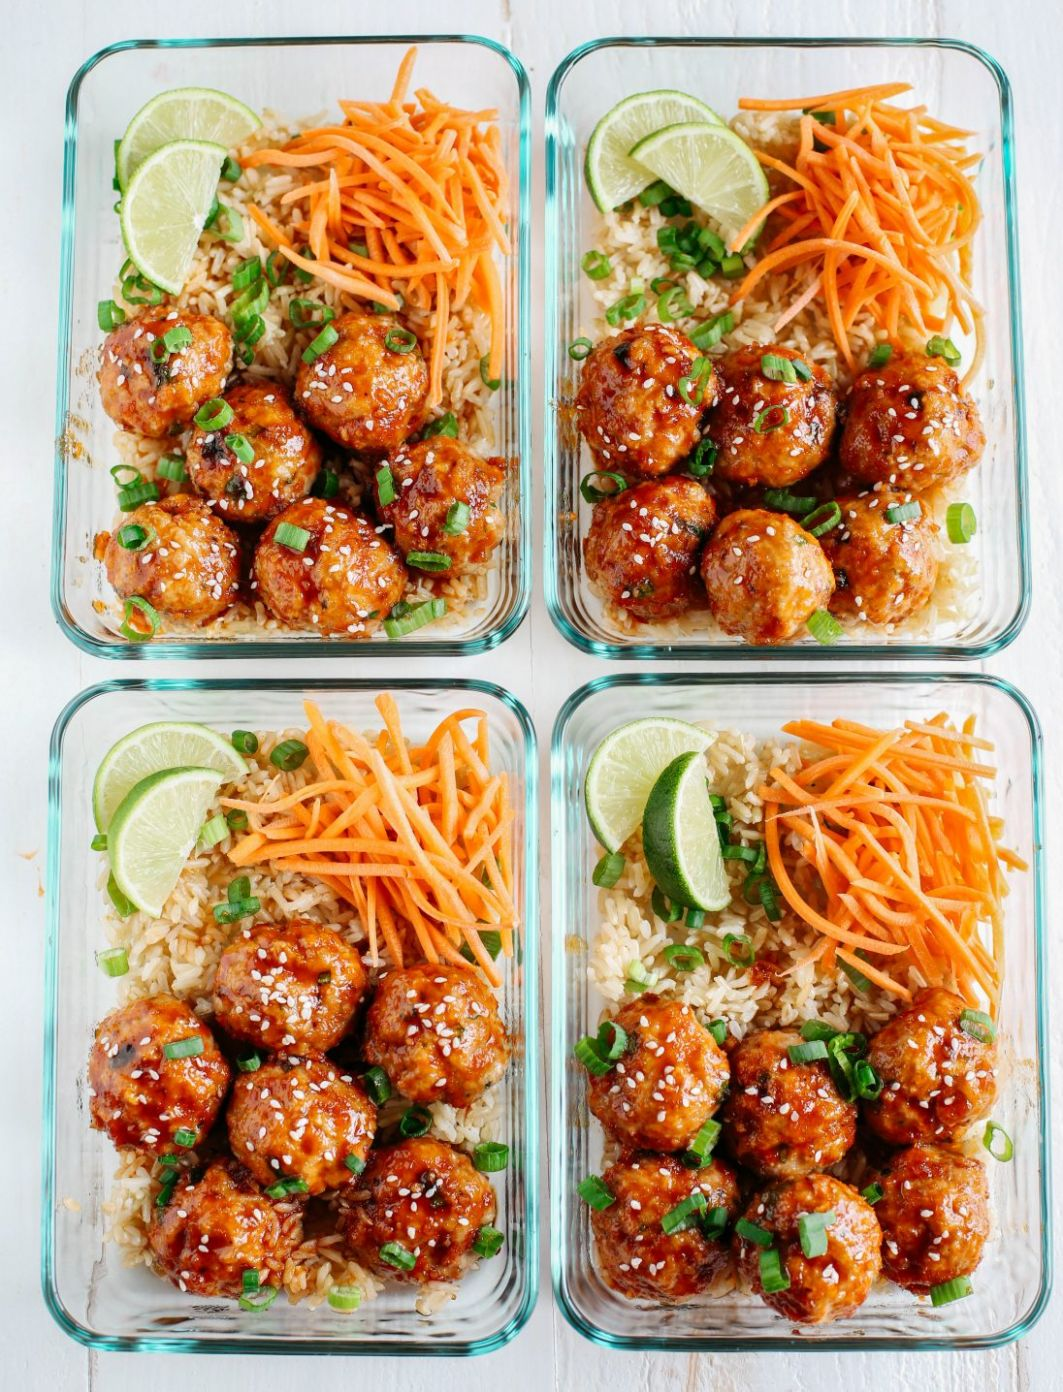 My Weekly Meal Prep Routine! - Eat Yourself Skinny - Recipes For Weight Loss Lunch